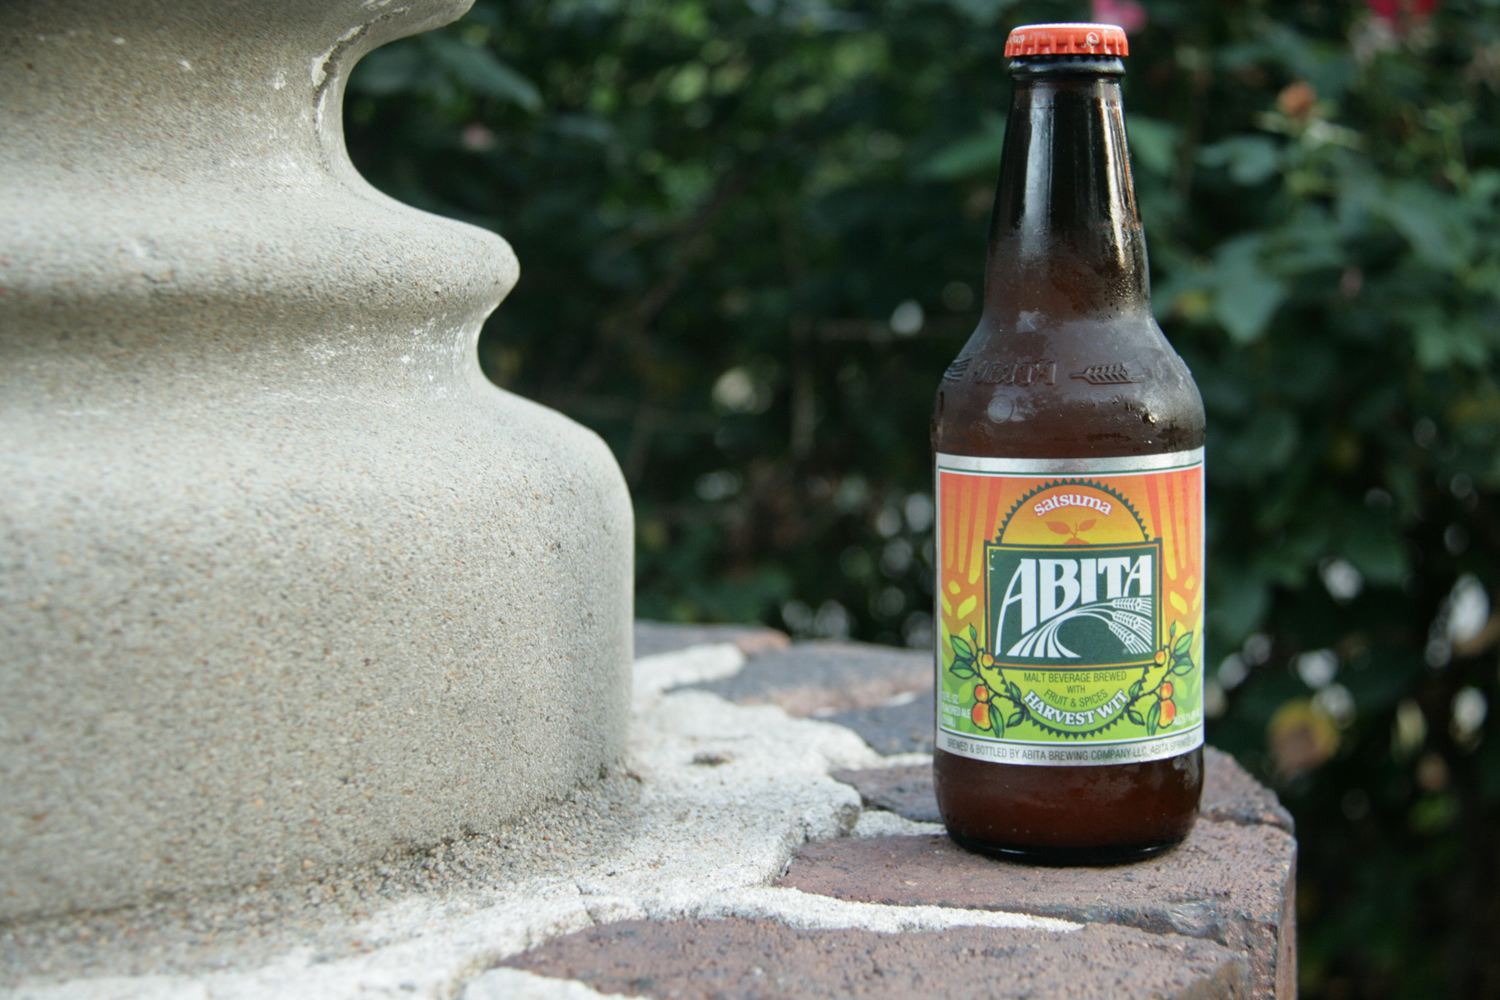 Seasonal Satsuma harvest beer from Abita is released in late summer.